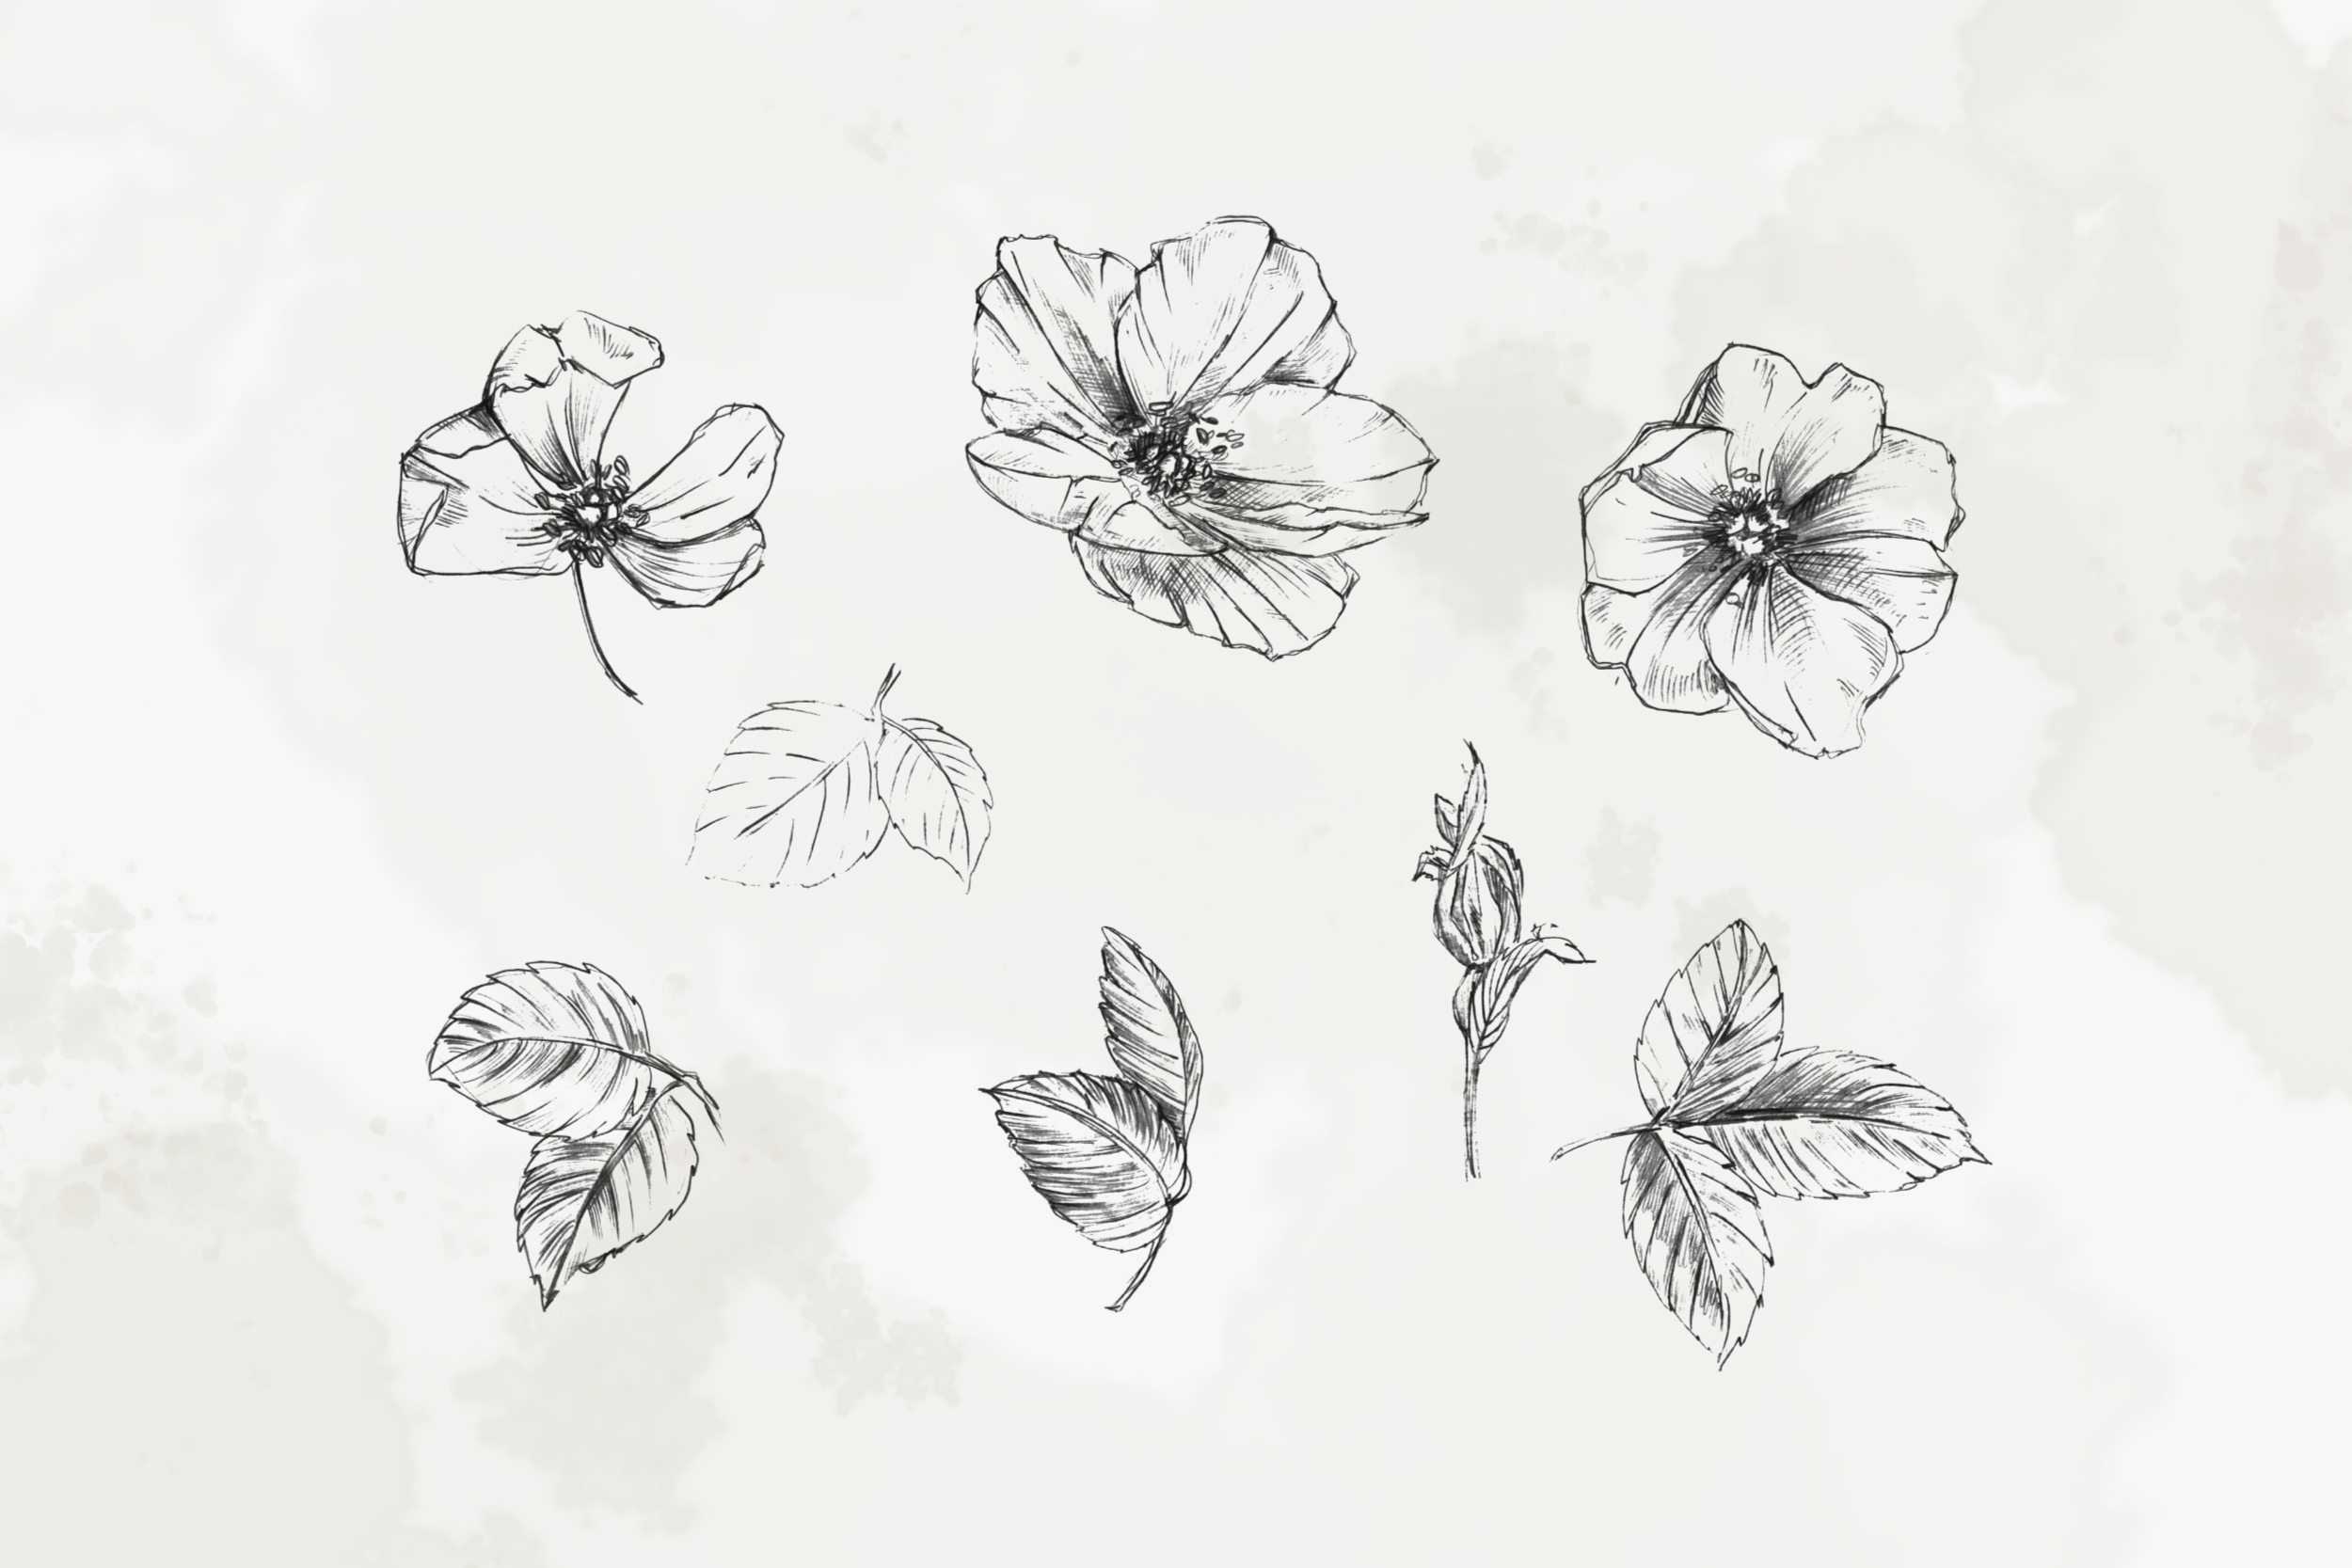 Hand Drawn Fine Art Graphic Images - Delicate wild rose. example image 3